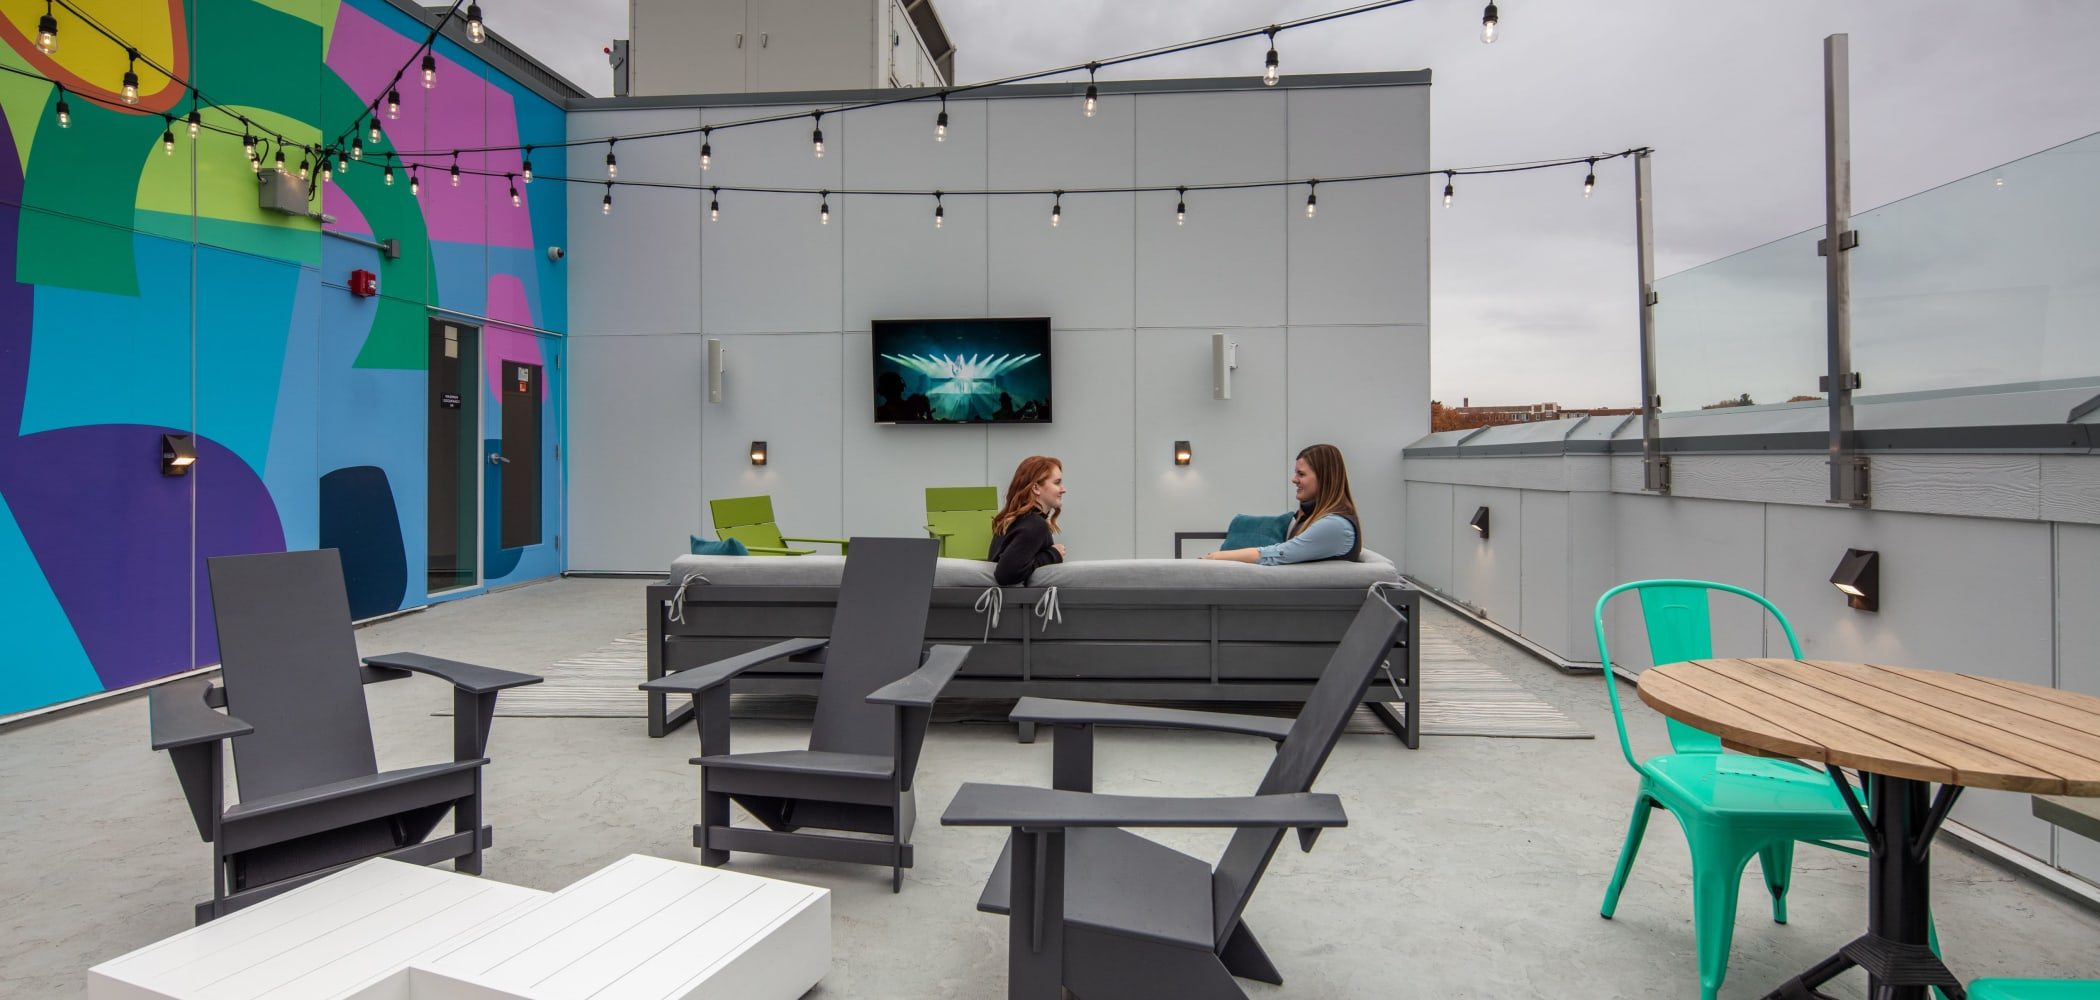 Outdoor lounge area at evolve on Main in Pullman, Washington